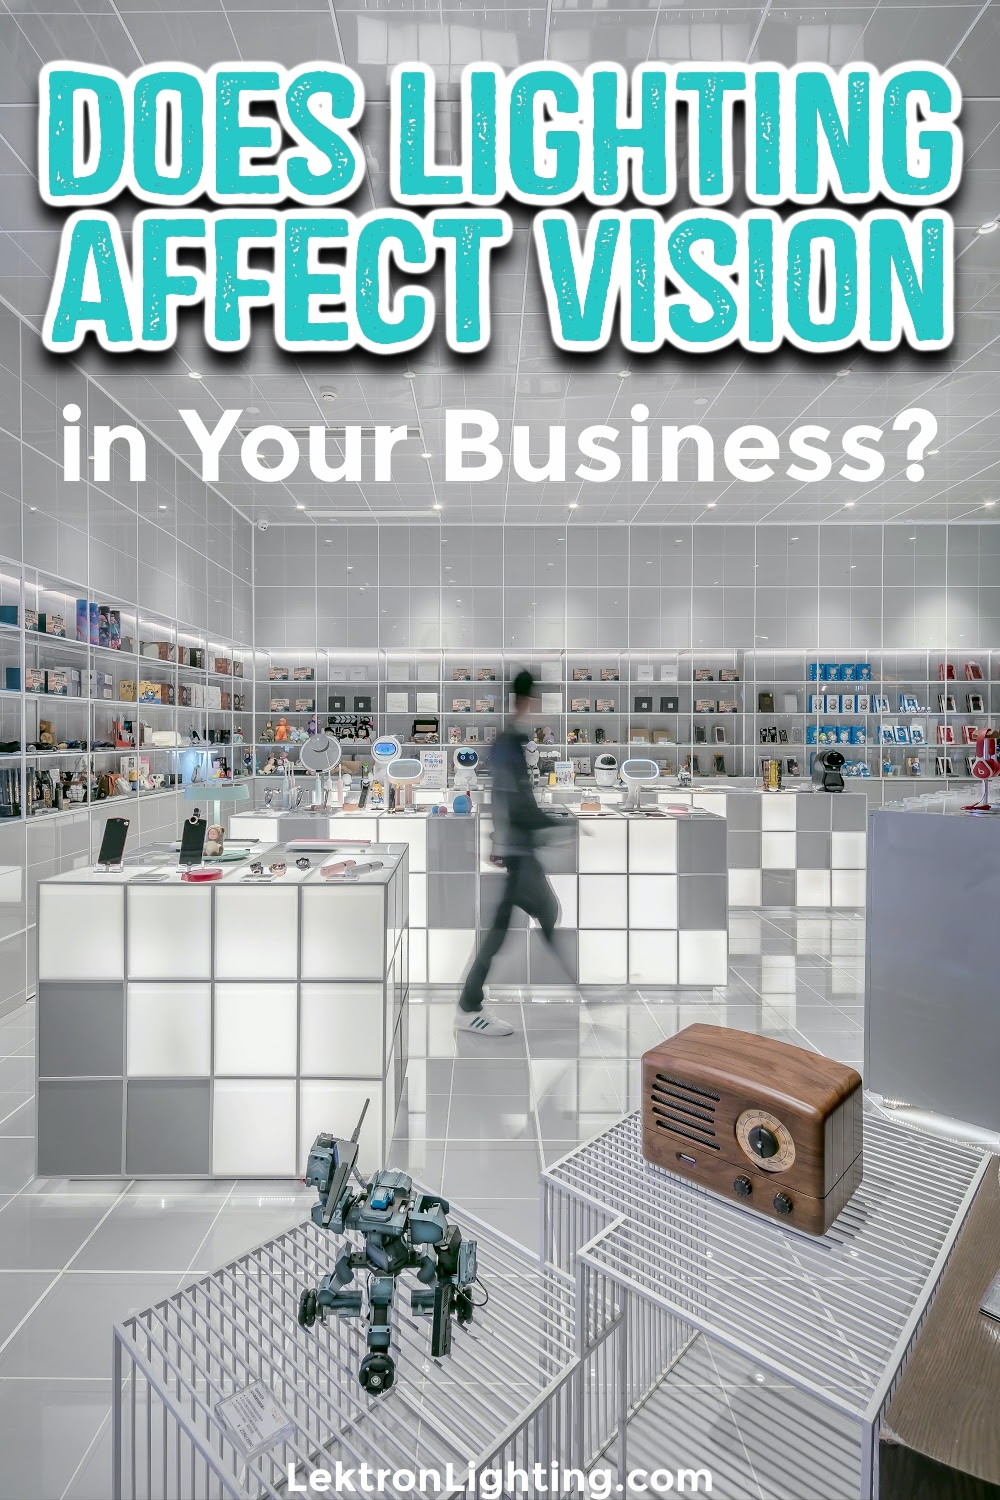 How does lighting affect vision in your business? It affects vision in many ways for employees and for customers or clients.